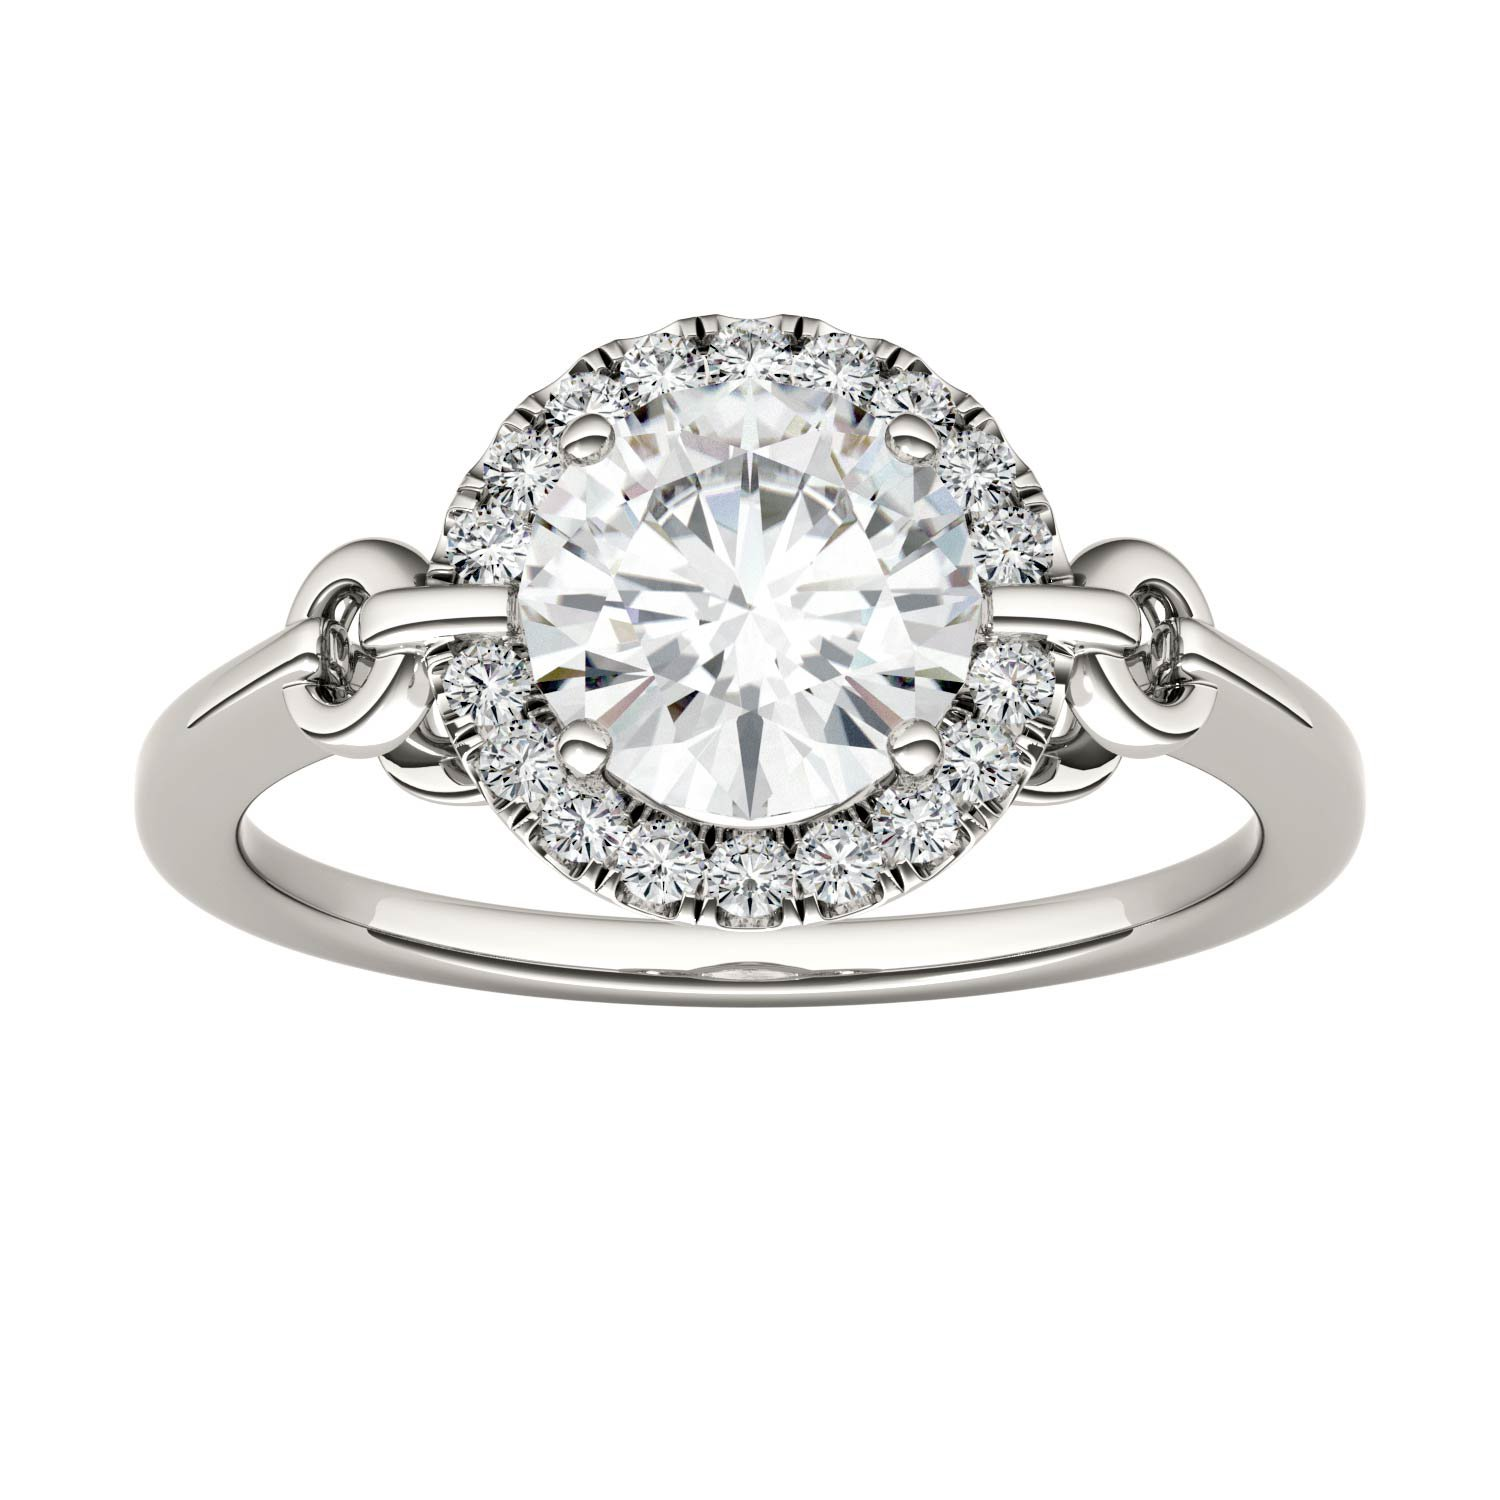 Forever Brilliant Round 7.5mm Moissanite Engagement Ring-size 6, 1.68cttw DEW By Charles & Colvard